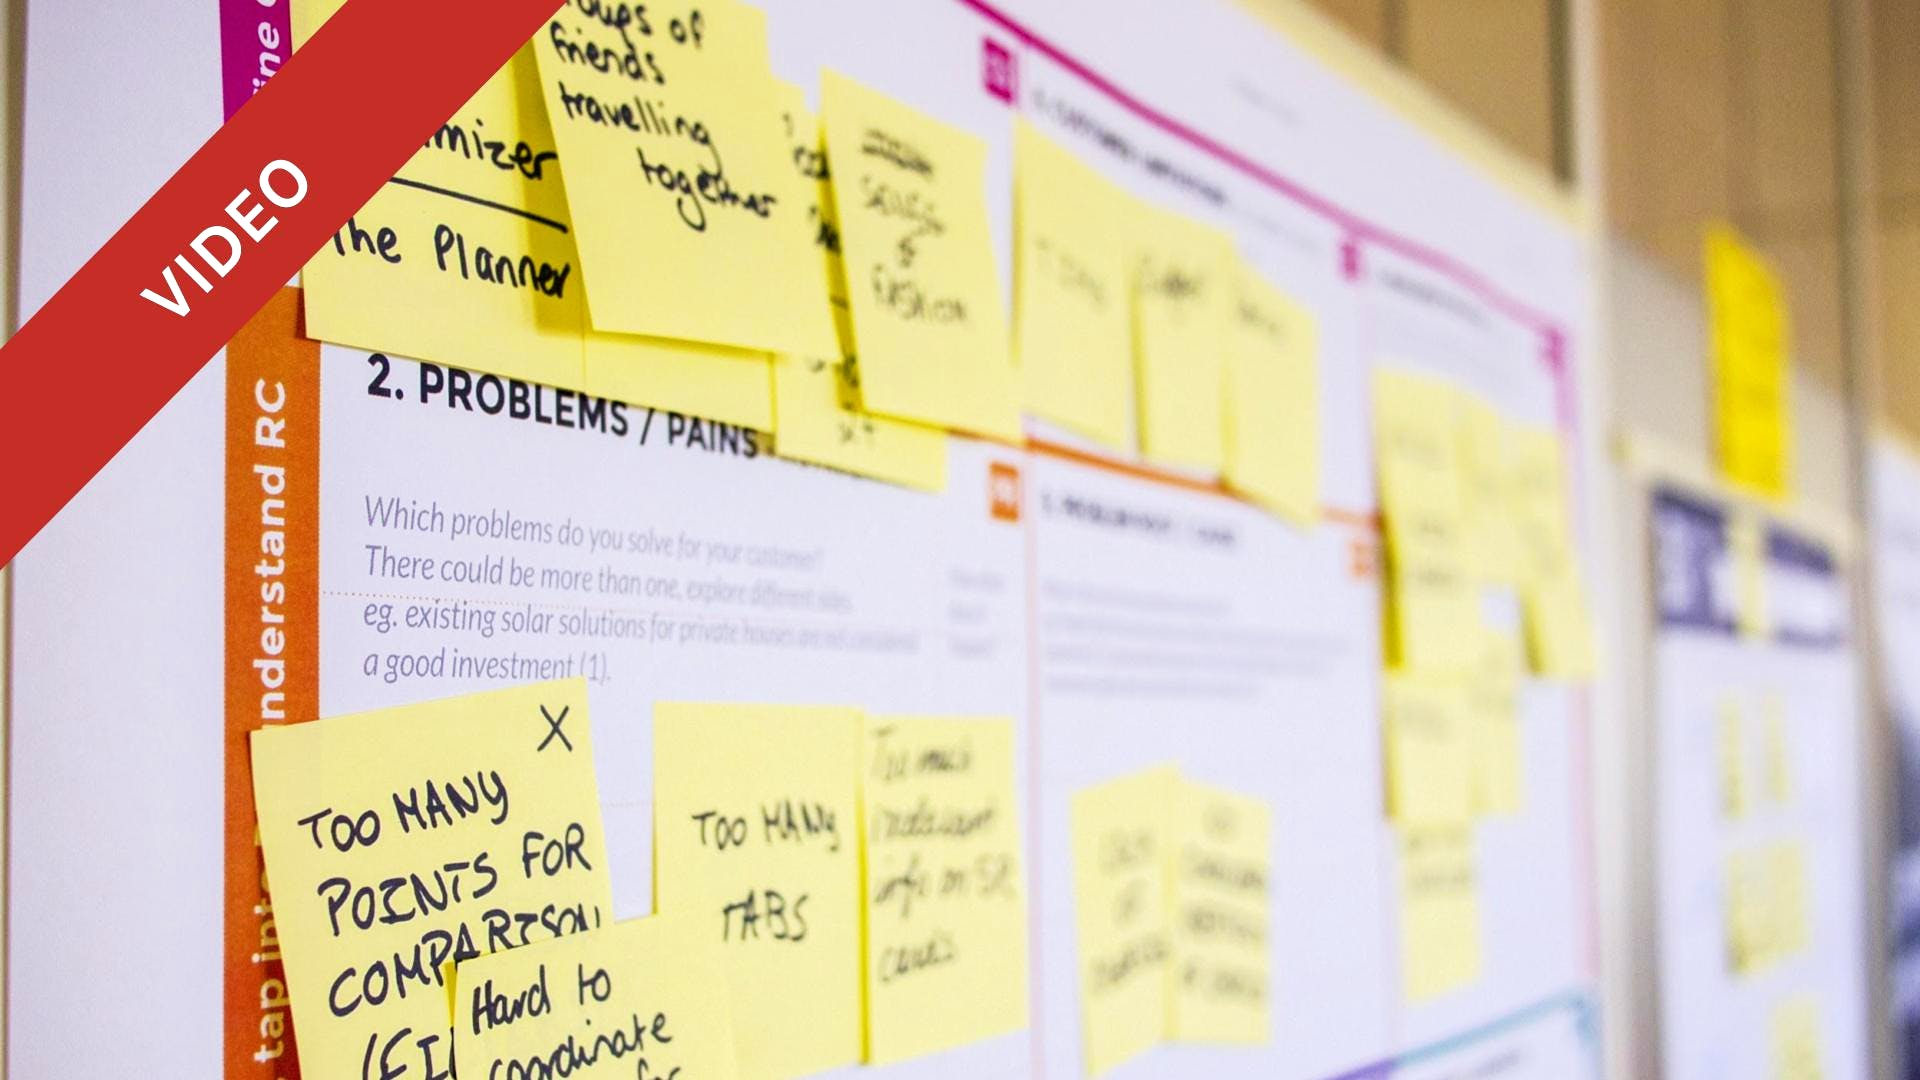 Revisit Your Business Canvas to Pivot, Survive, and Thrive